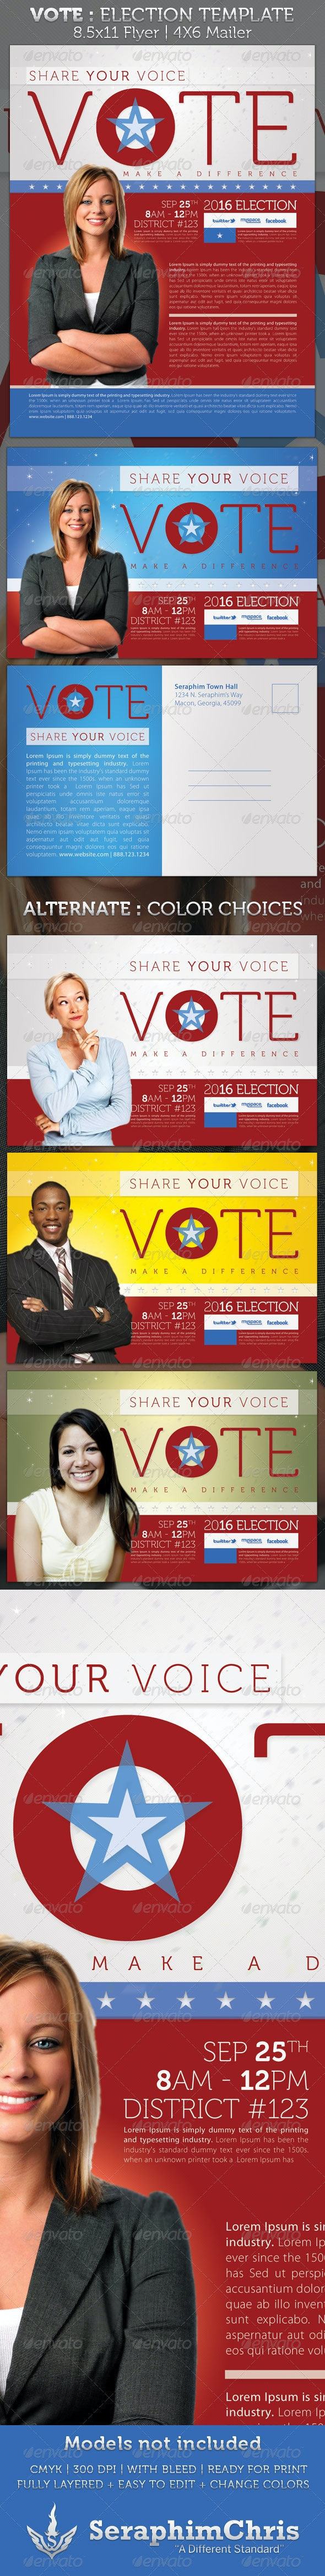 Vote - Election Full Page and Mailer Template - Events Flyers